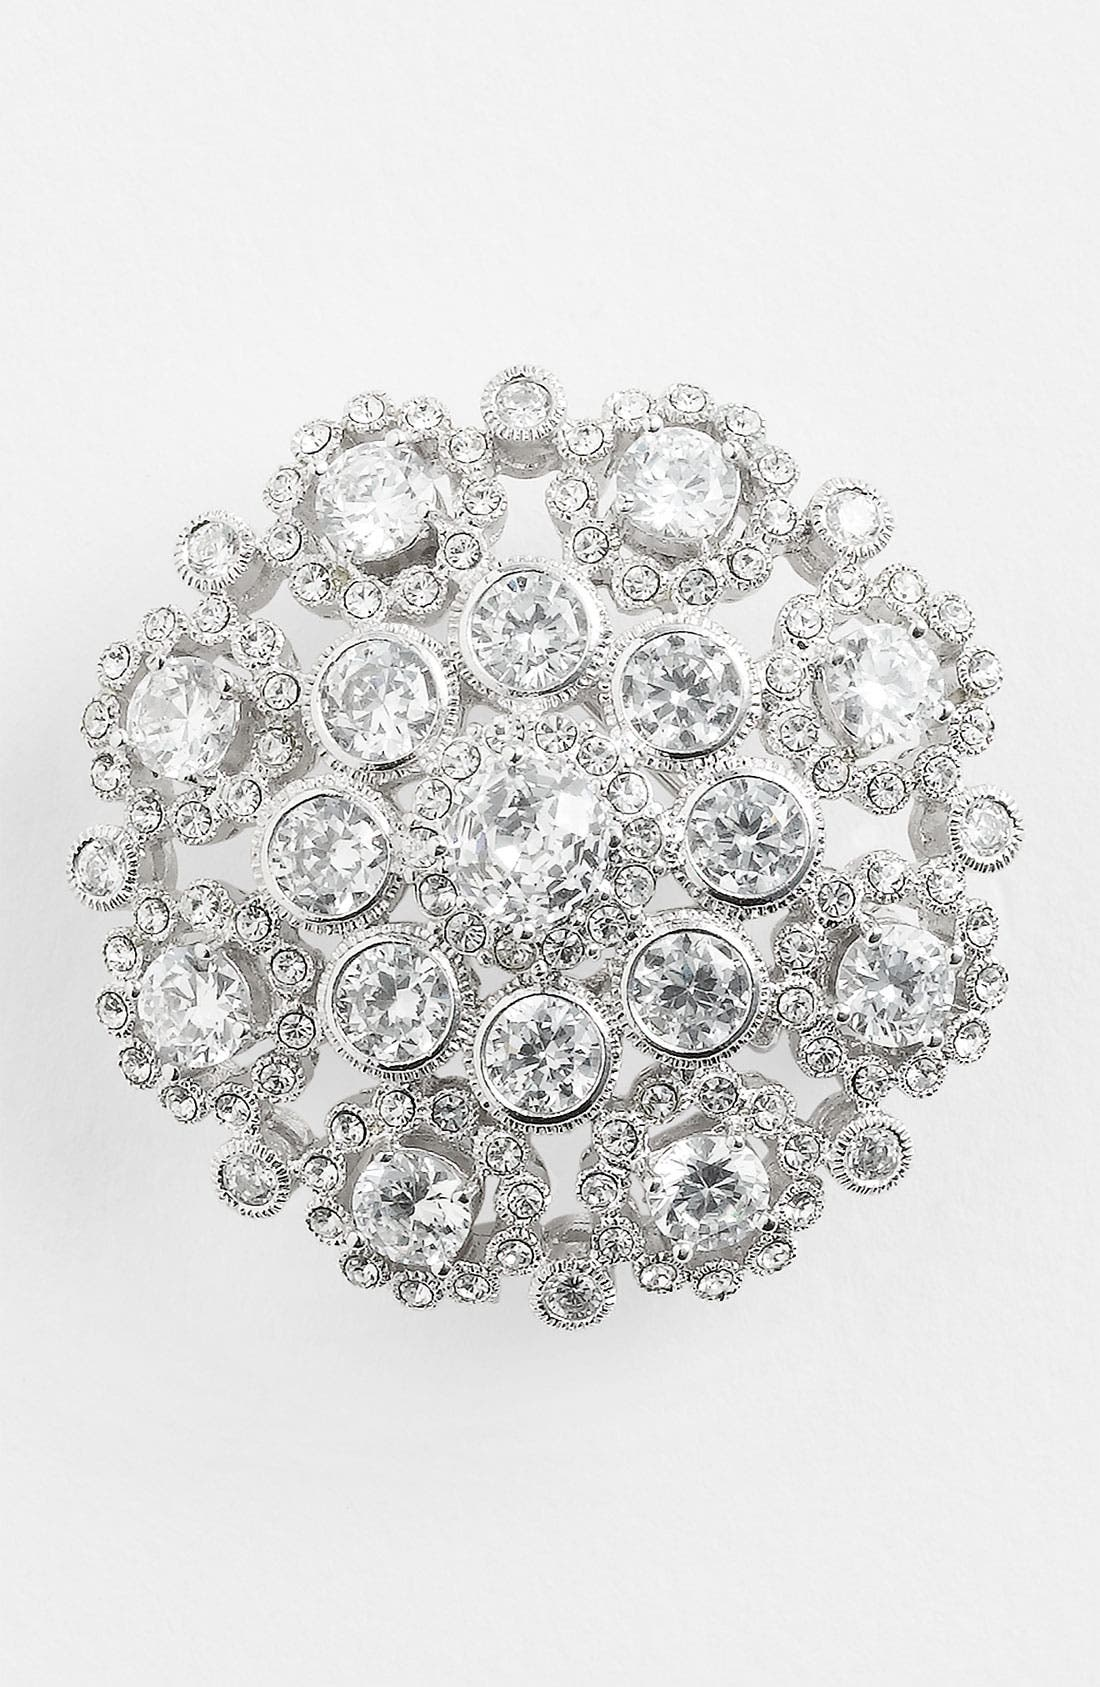 Alternate Image 1 Selected - Nadri Round Cubic Zirconia Brooch (Nordstrom Exclusive)